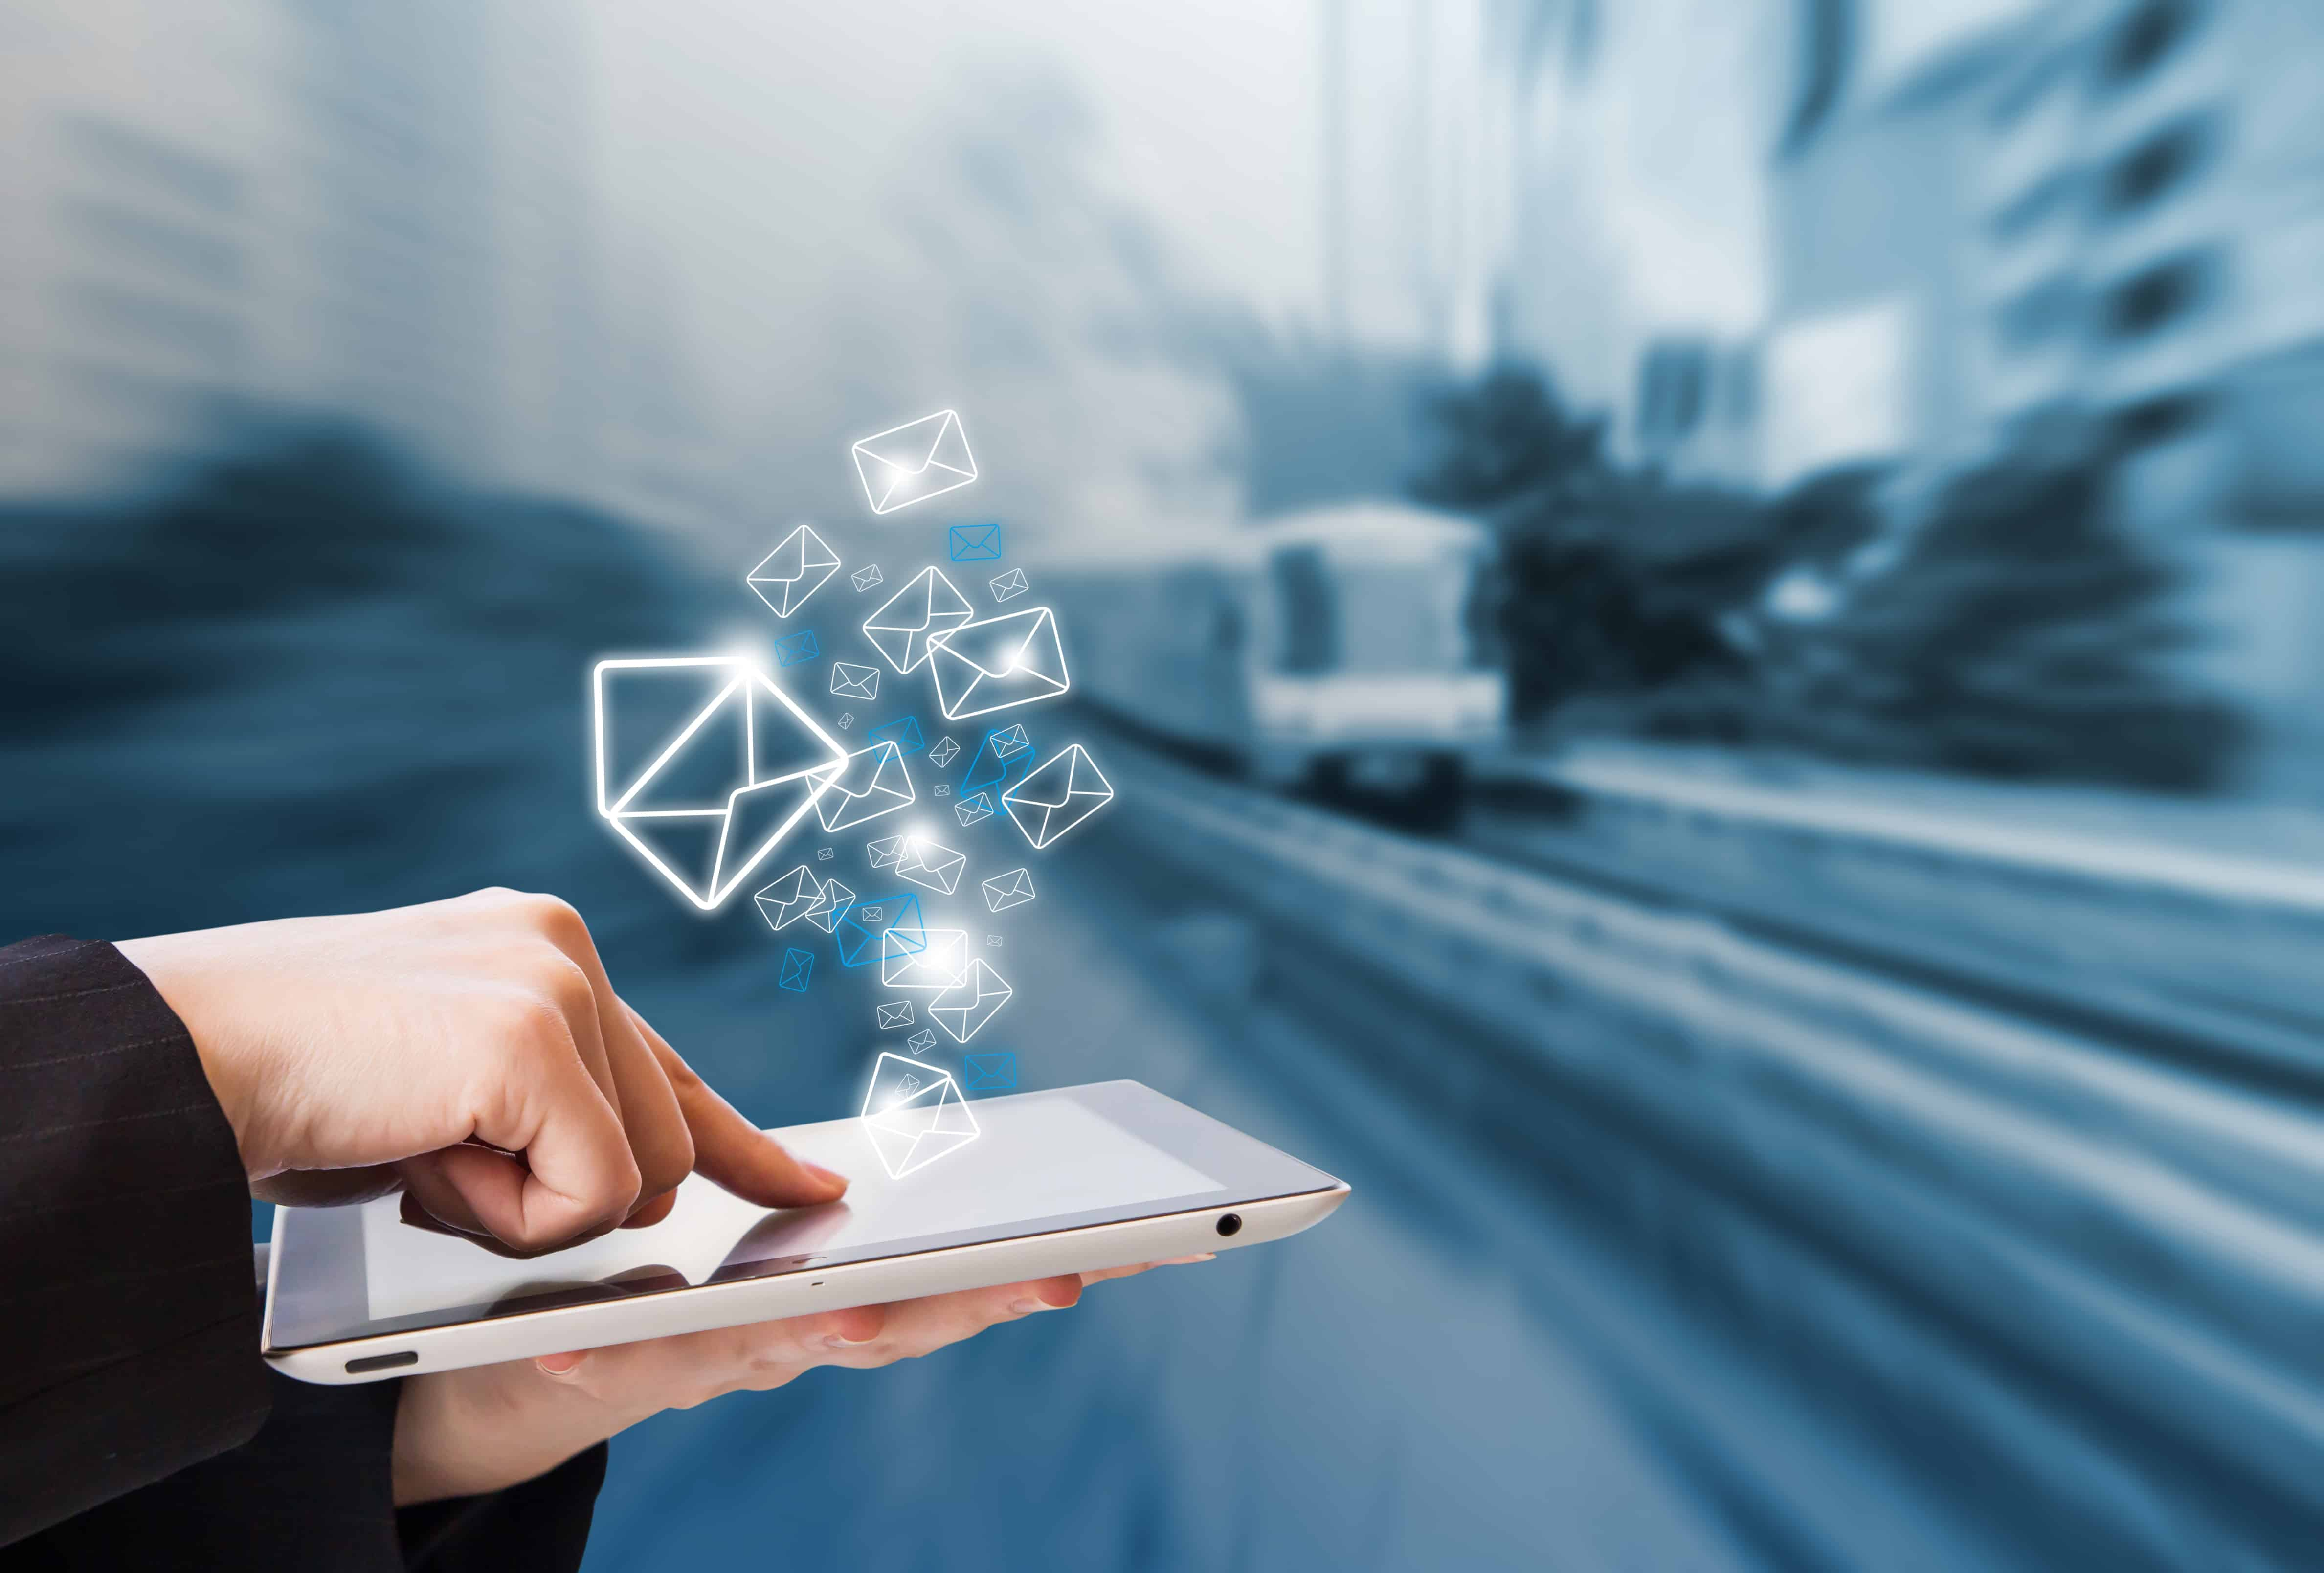 4 Email Marketing Tips to Get Your Messages Opened